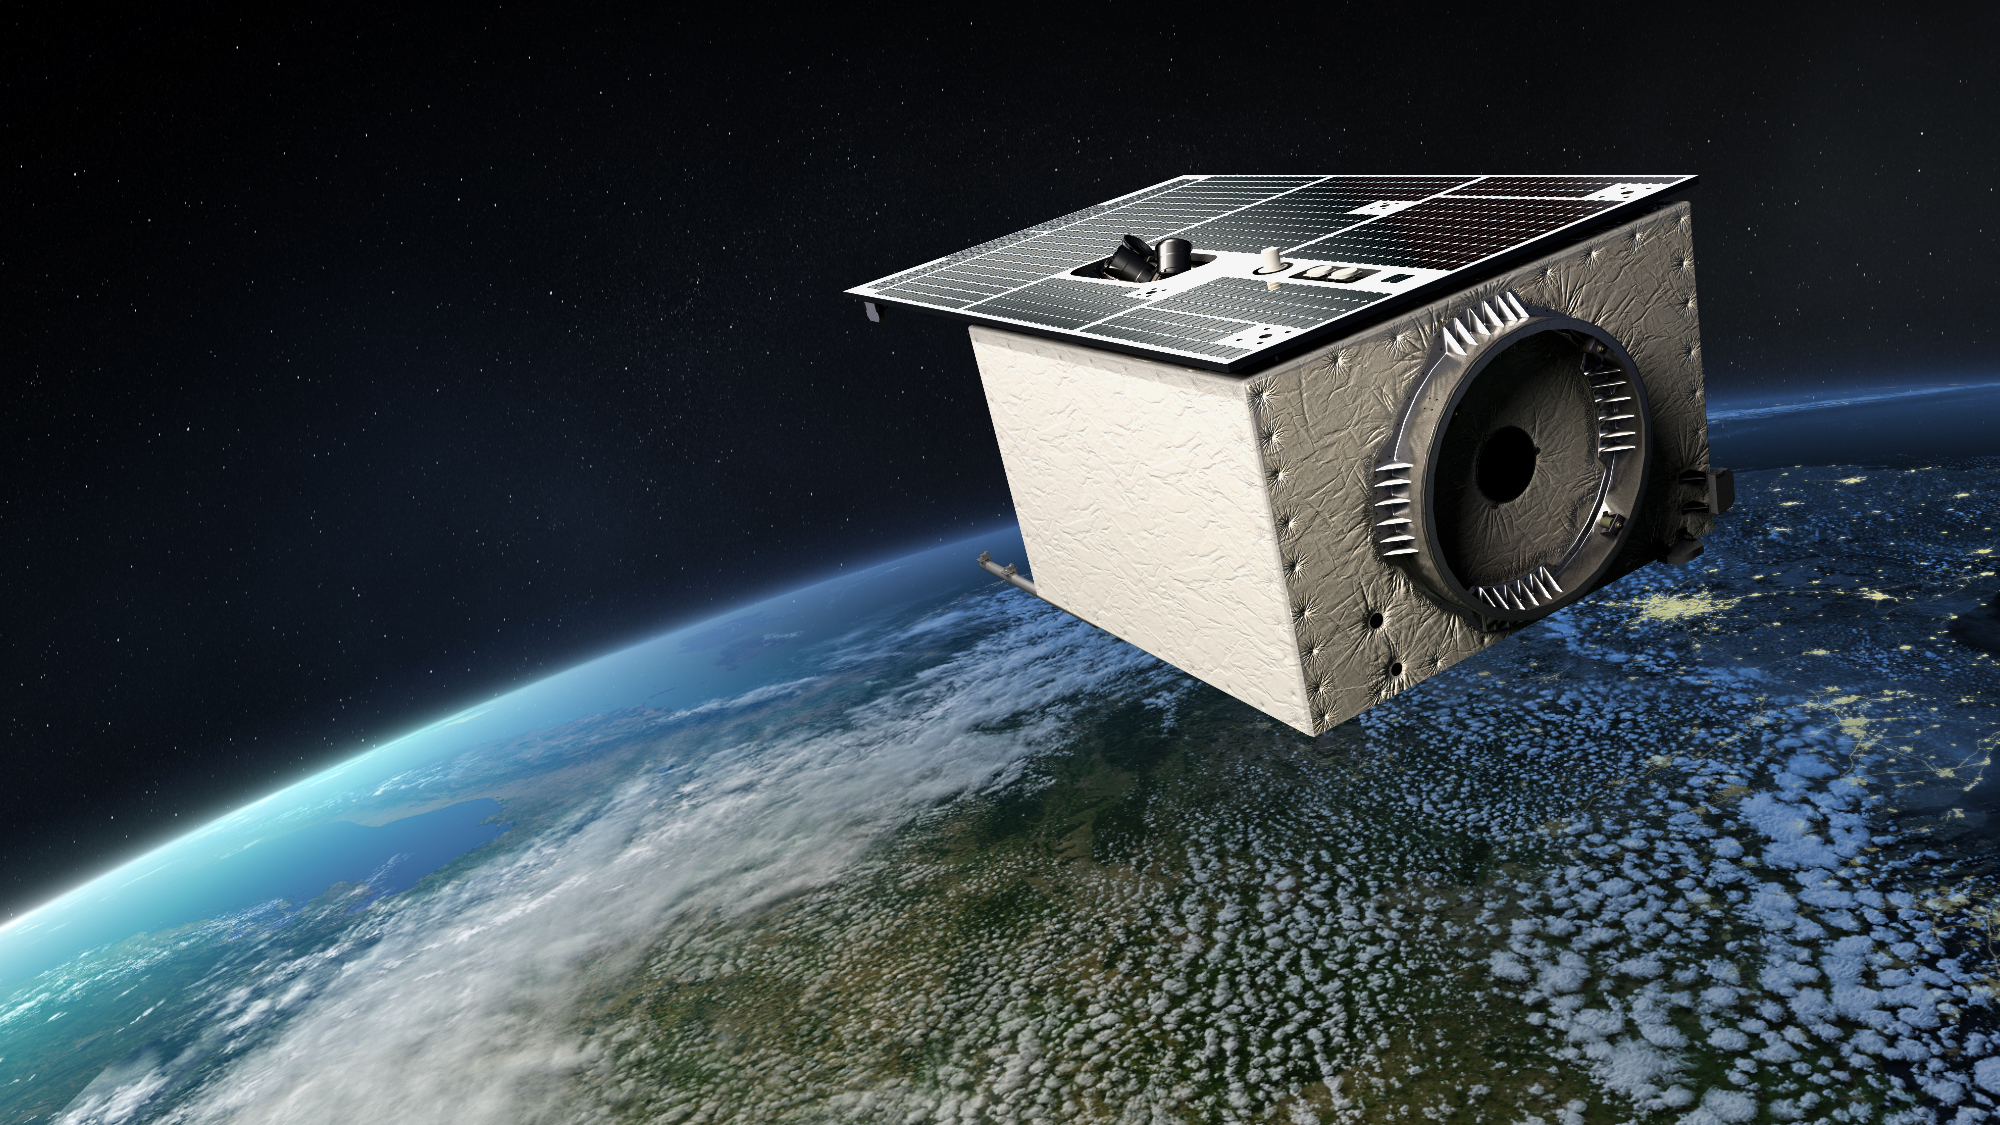 How To Use Remote Start >> EnMAP - Germany's hyperspectral satellite